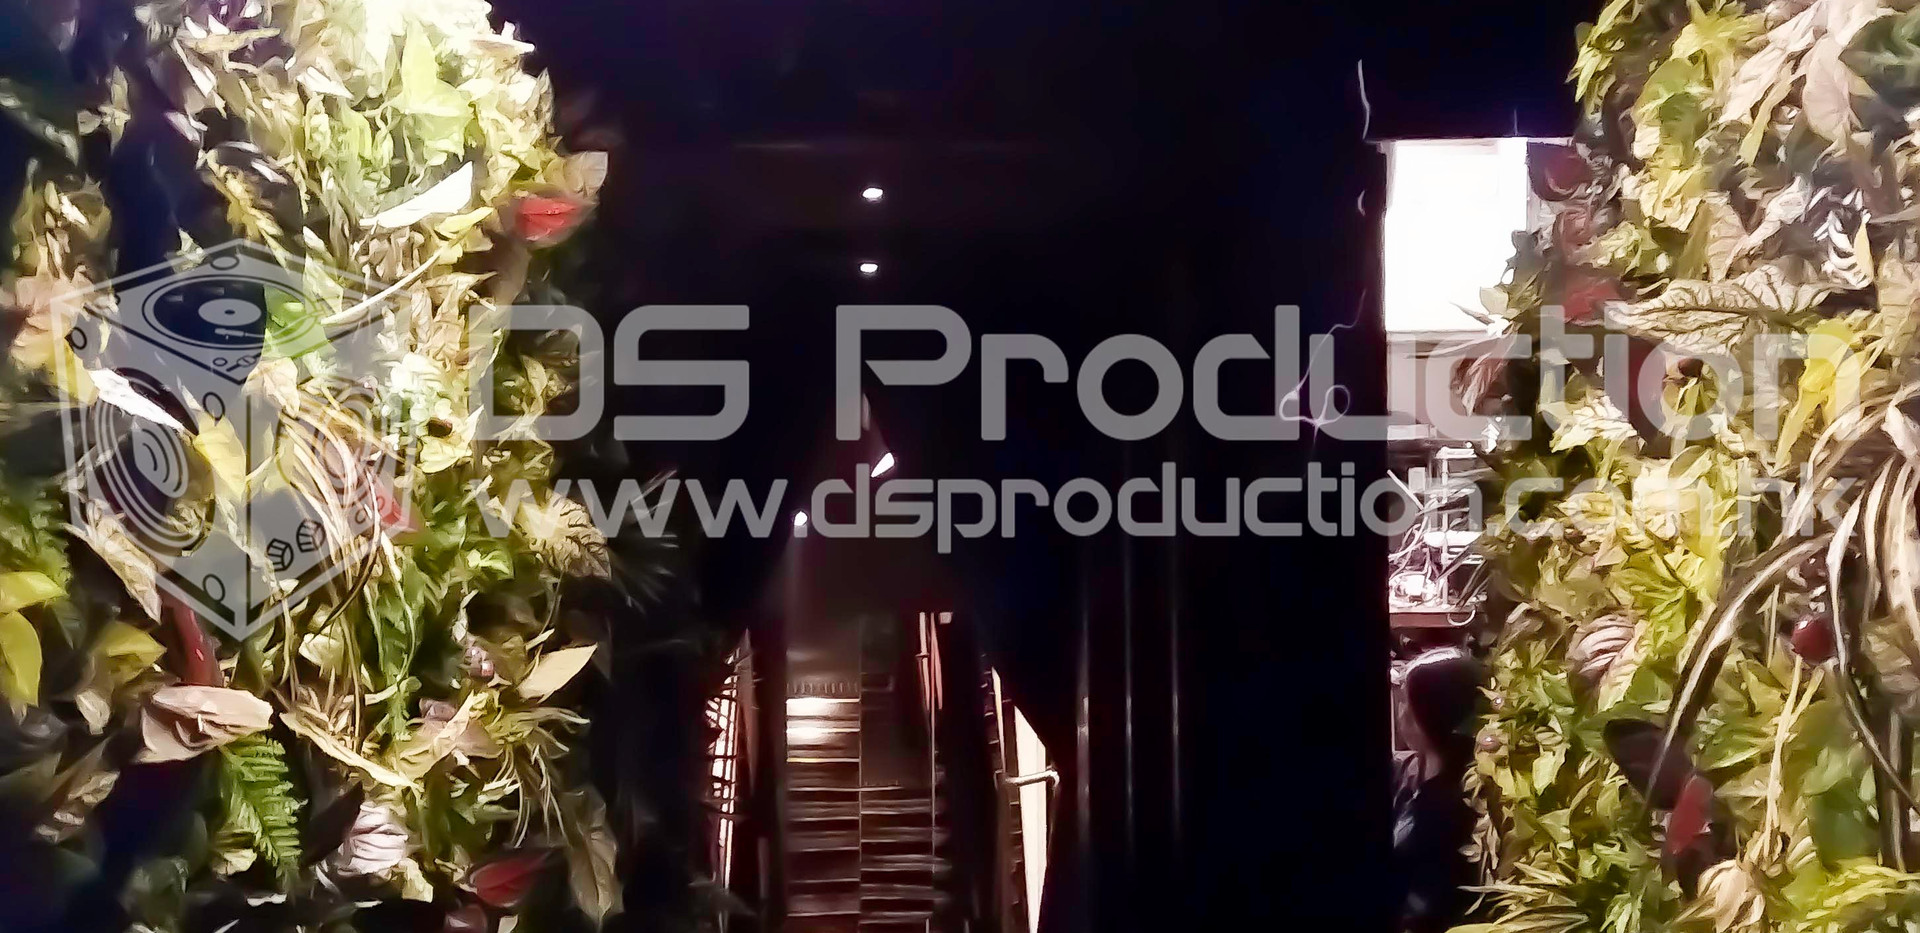 Props Production & Fog Effect